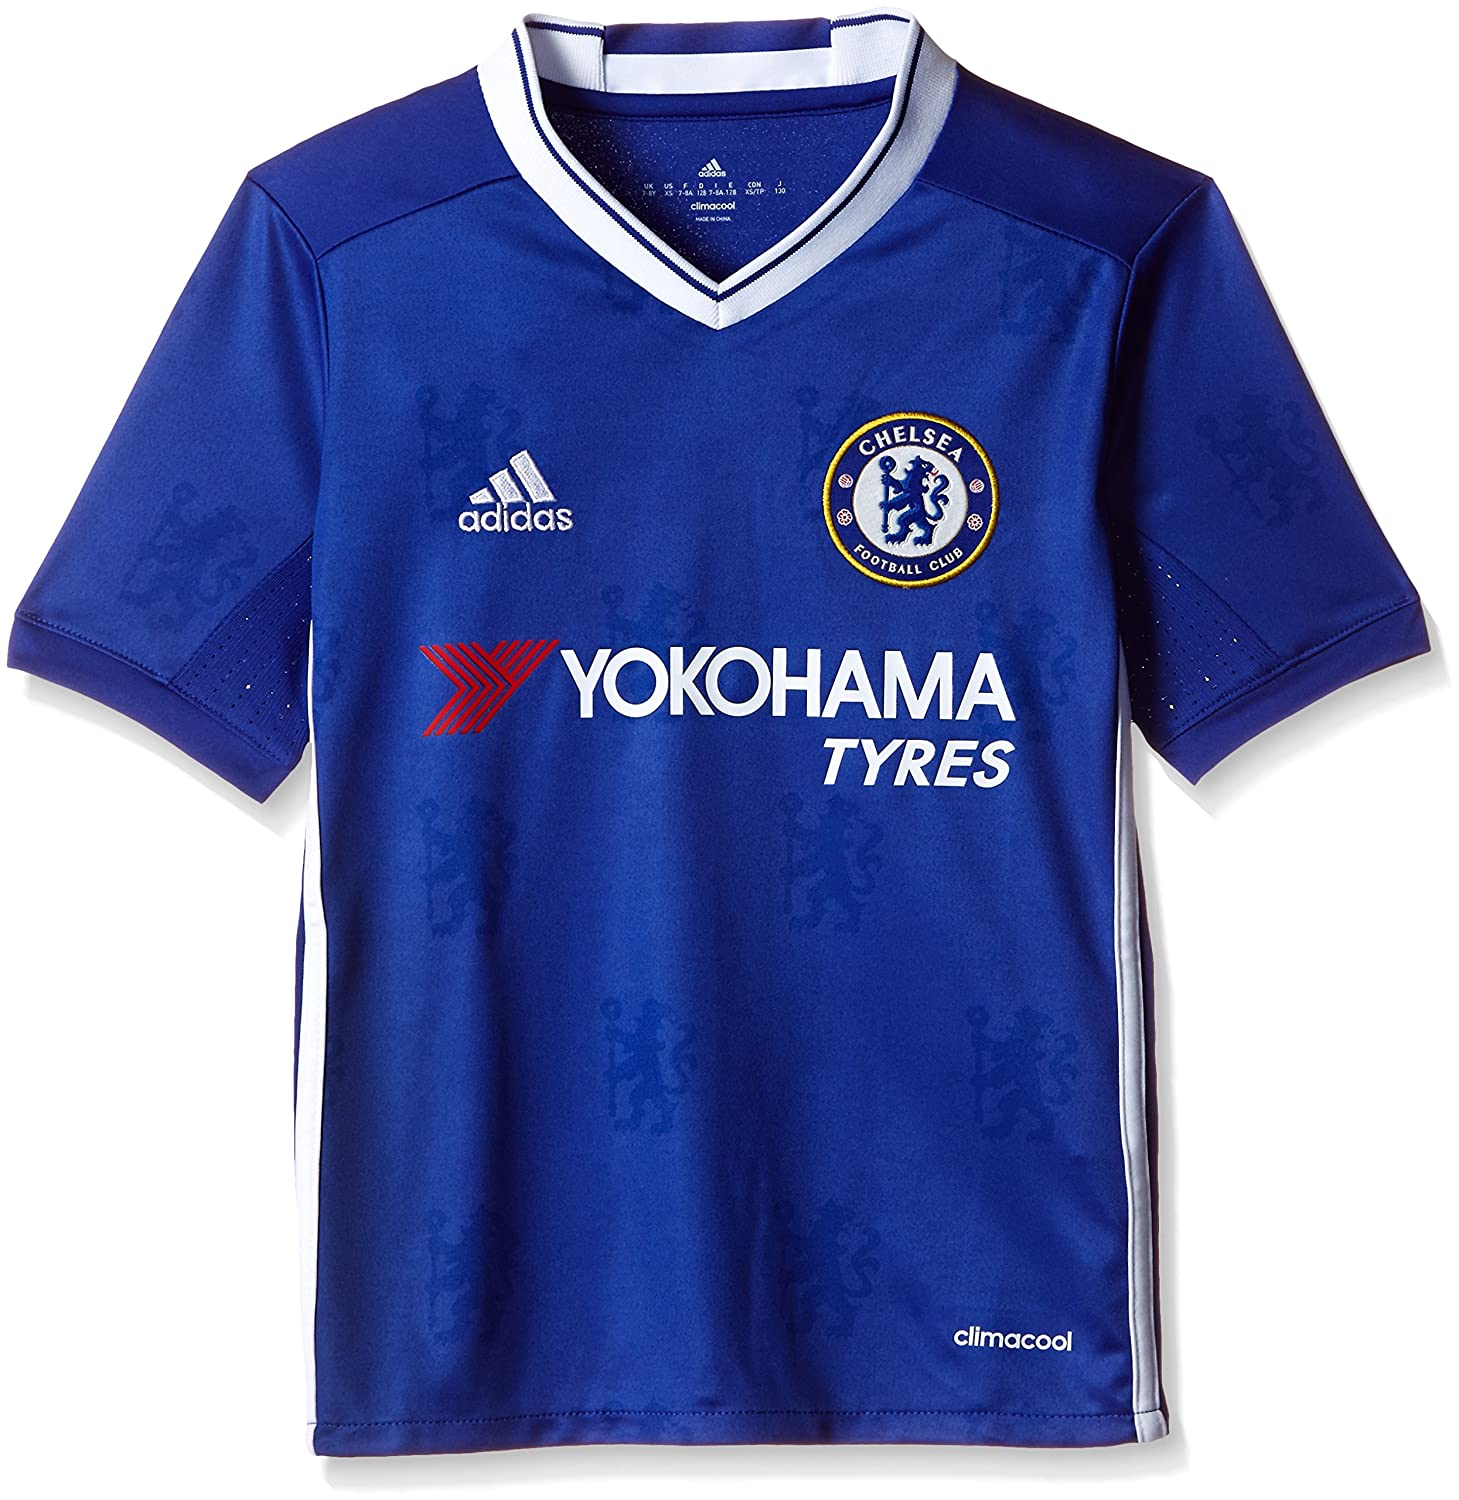 Amazon.com : Adidas Chelsea FC 2016/17 SS Home Jersey - Youth - Chelsea Blue/White - : Sports & Outdoors